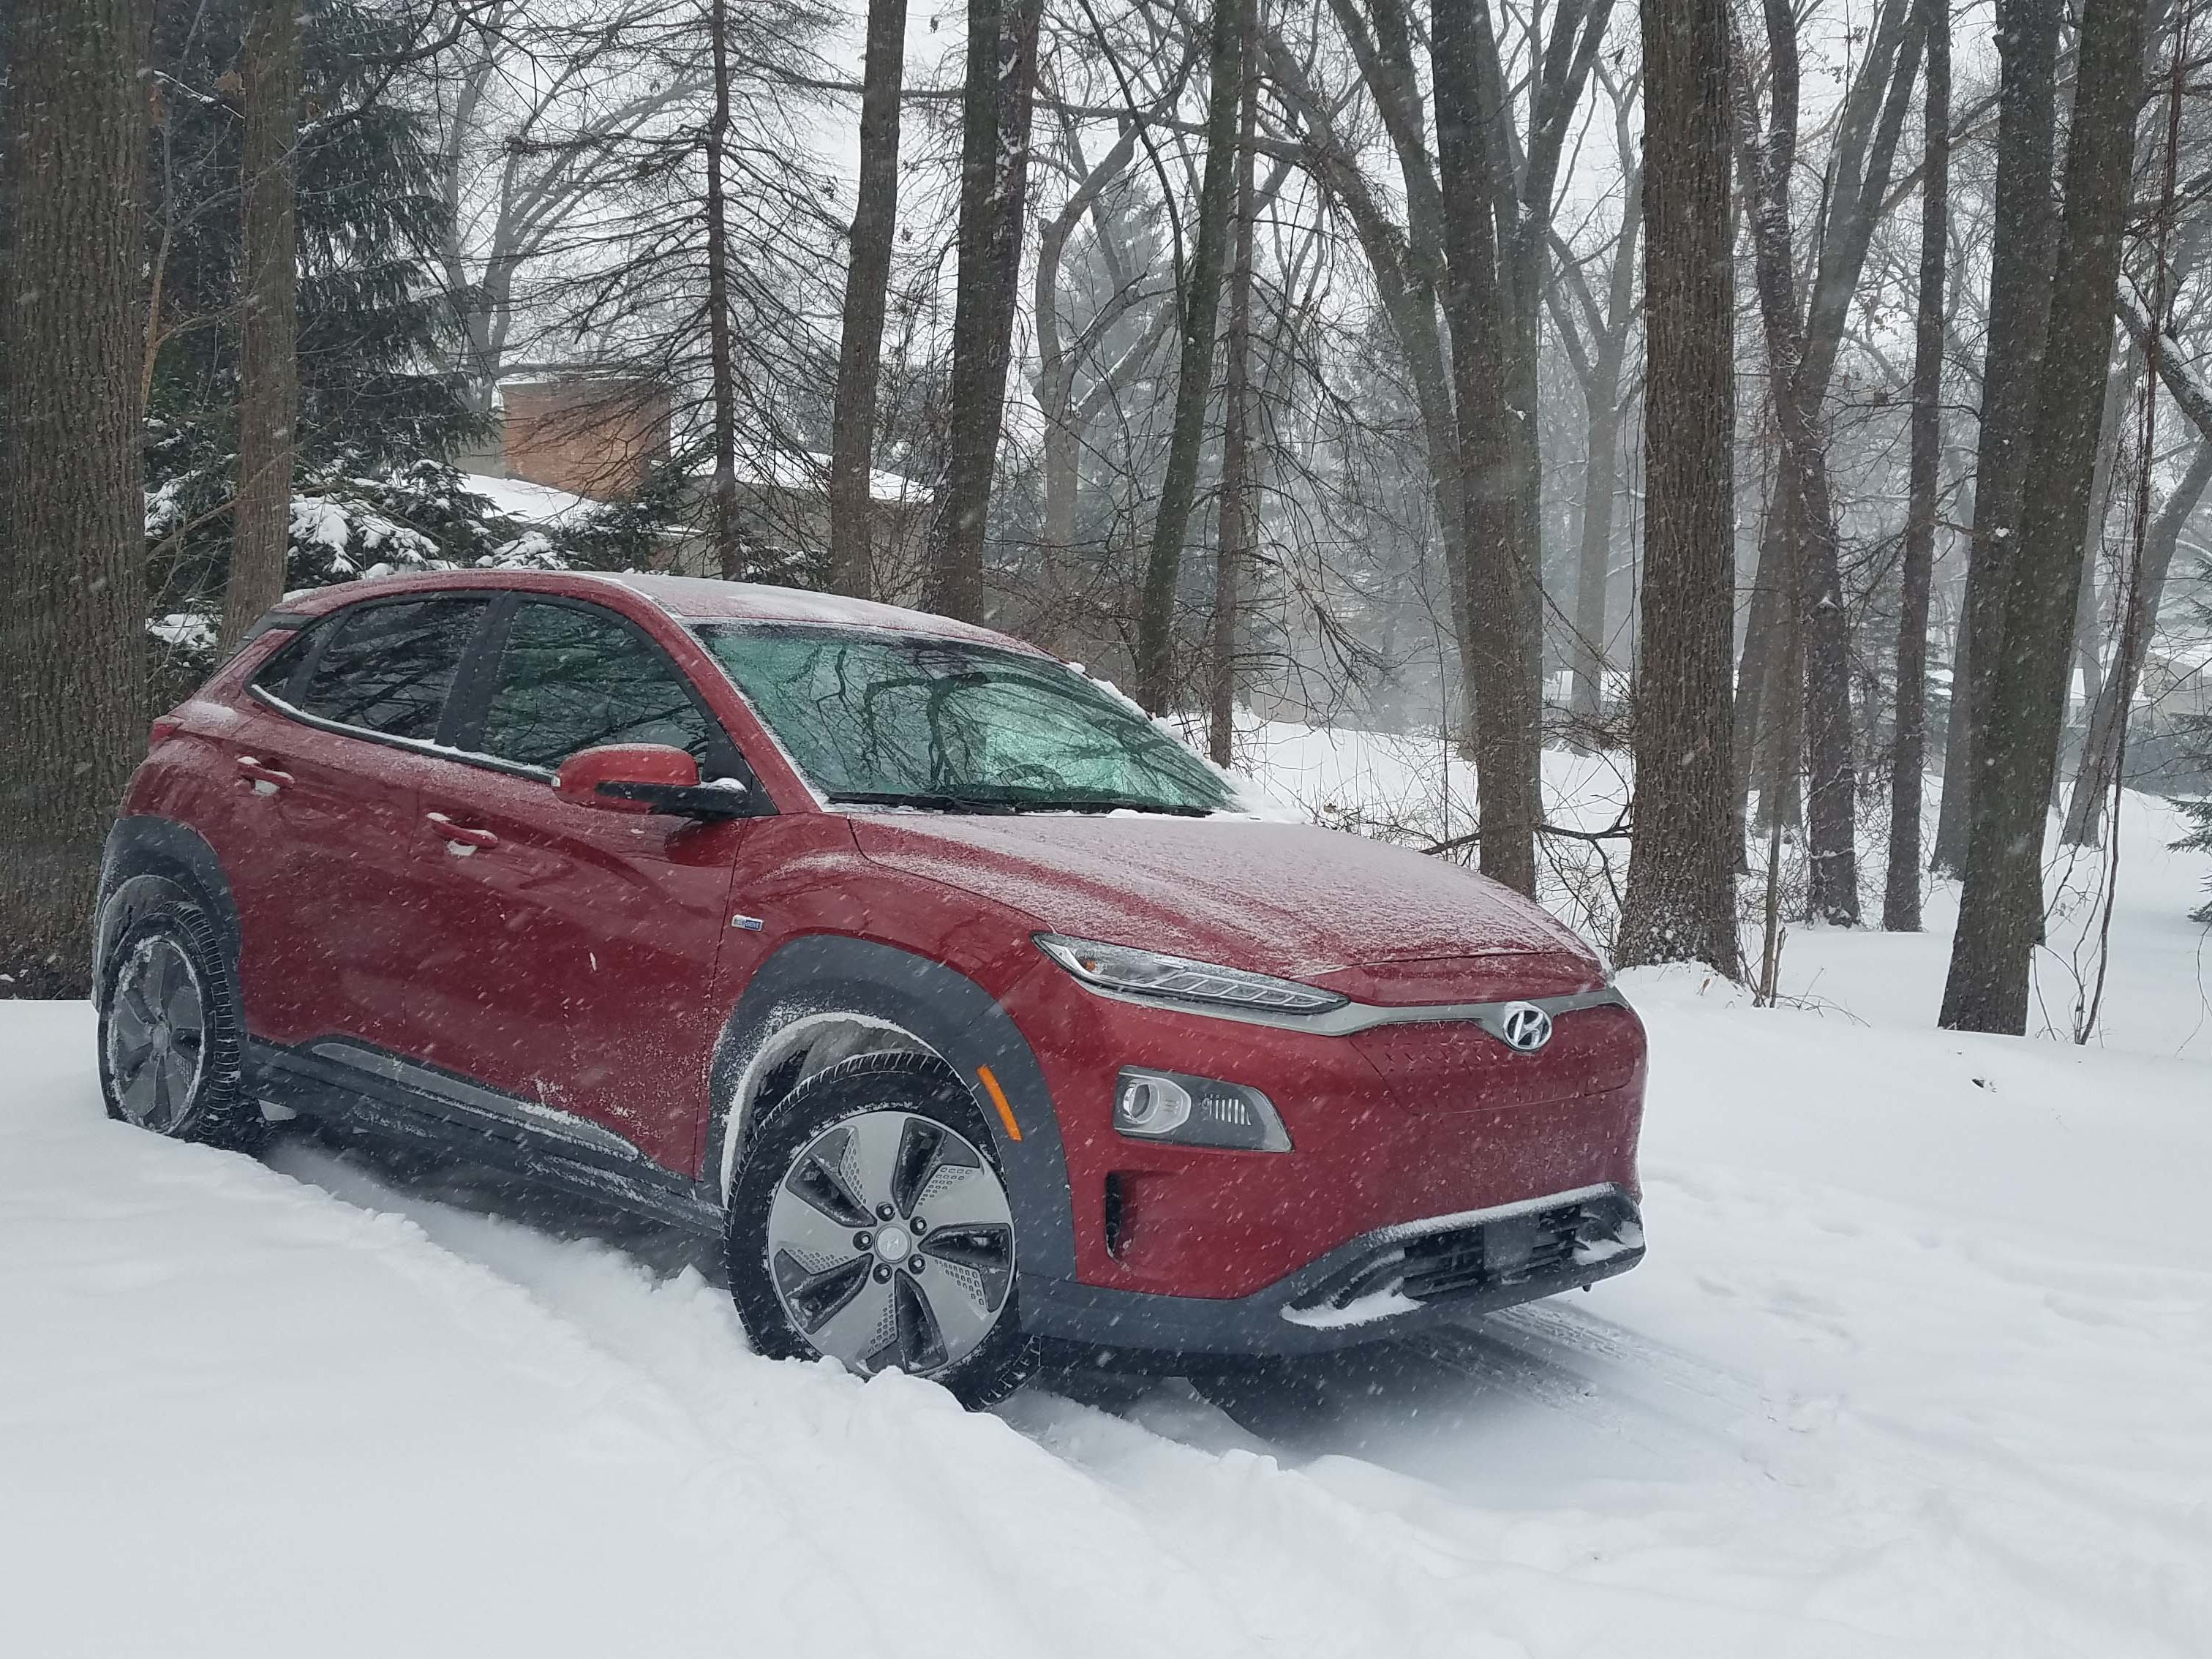 The 2019 Hyundai Kona EV is only available in front-wheel drive, which makes it a tough sell across from similarly priced, AWD, gas-powered SUVs. The car struggles to put down its 290-pound feet of torque in the snow as well.